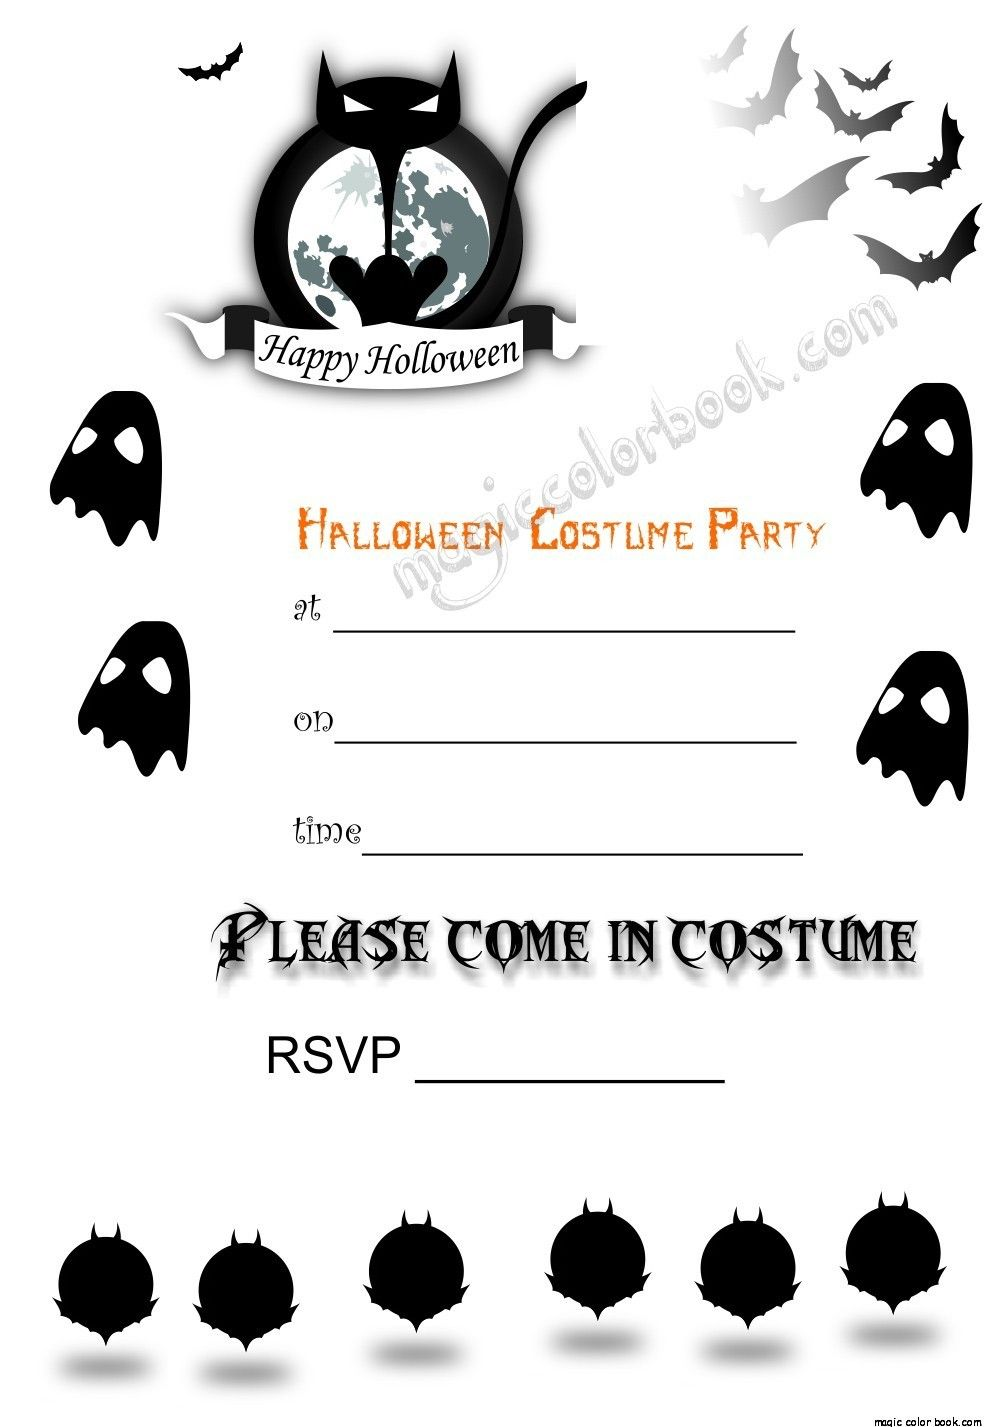 Pin by Magic Color Book on Halloween | Pinterest | Printable ...